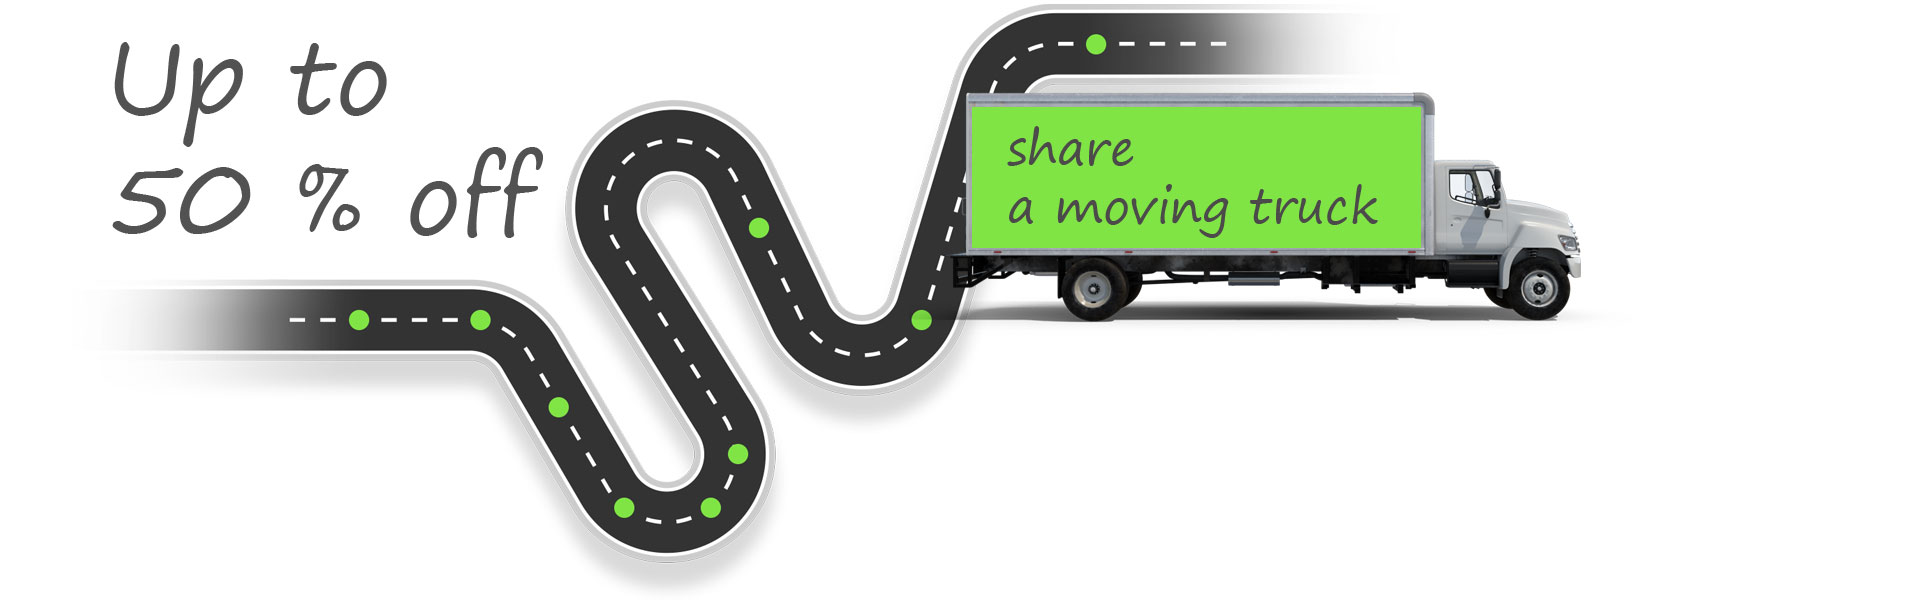 Share a moving truck